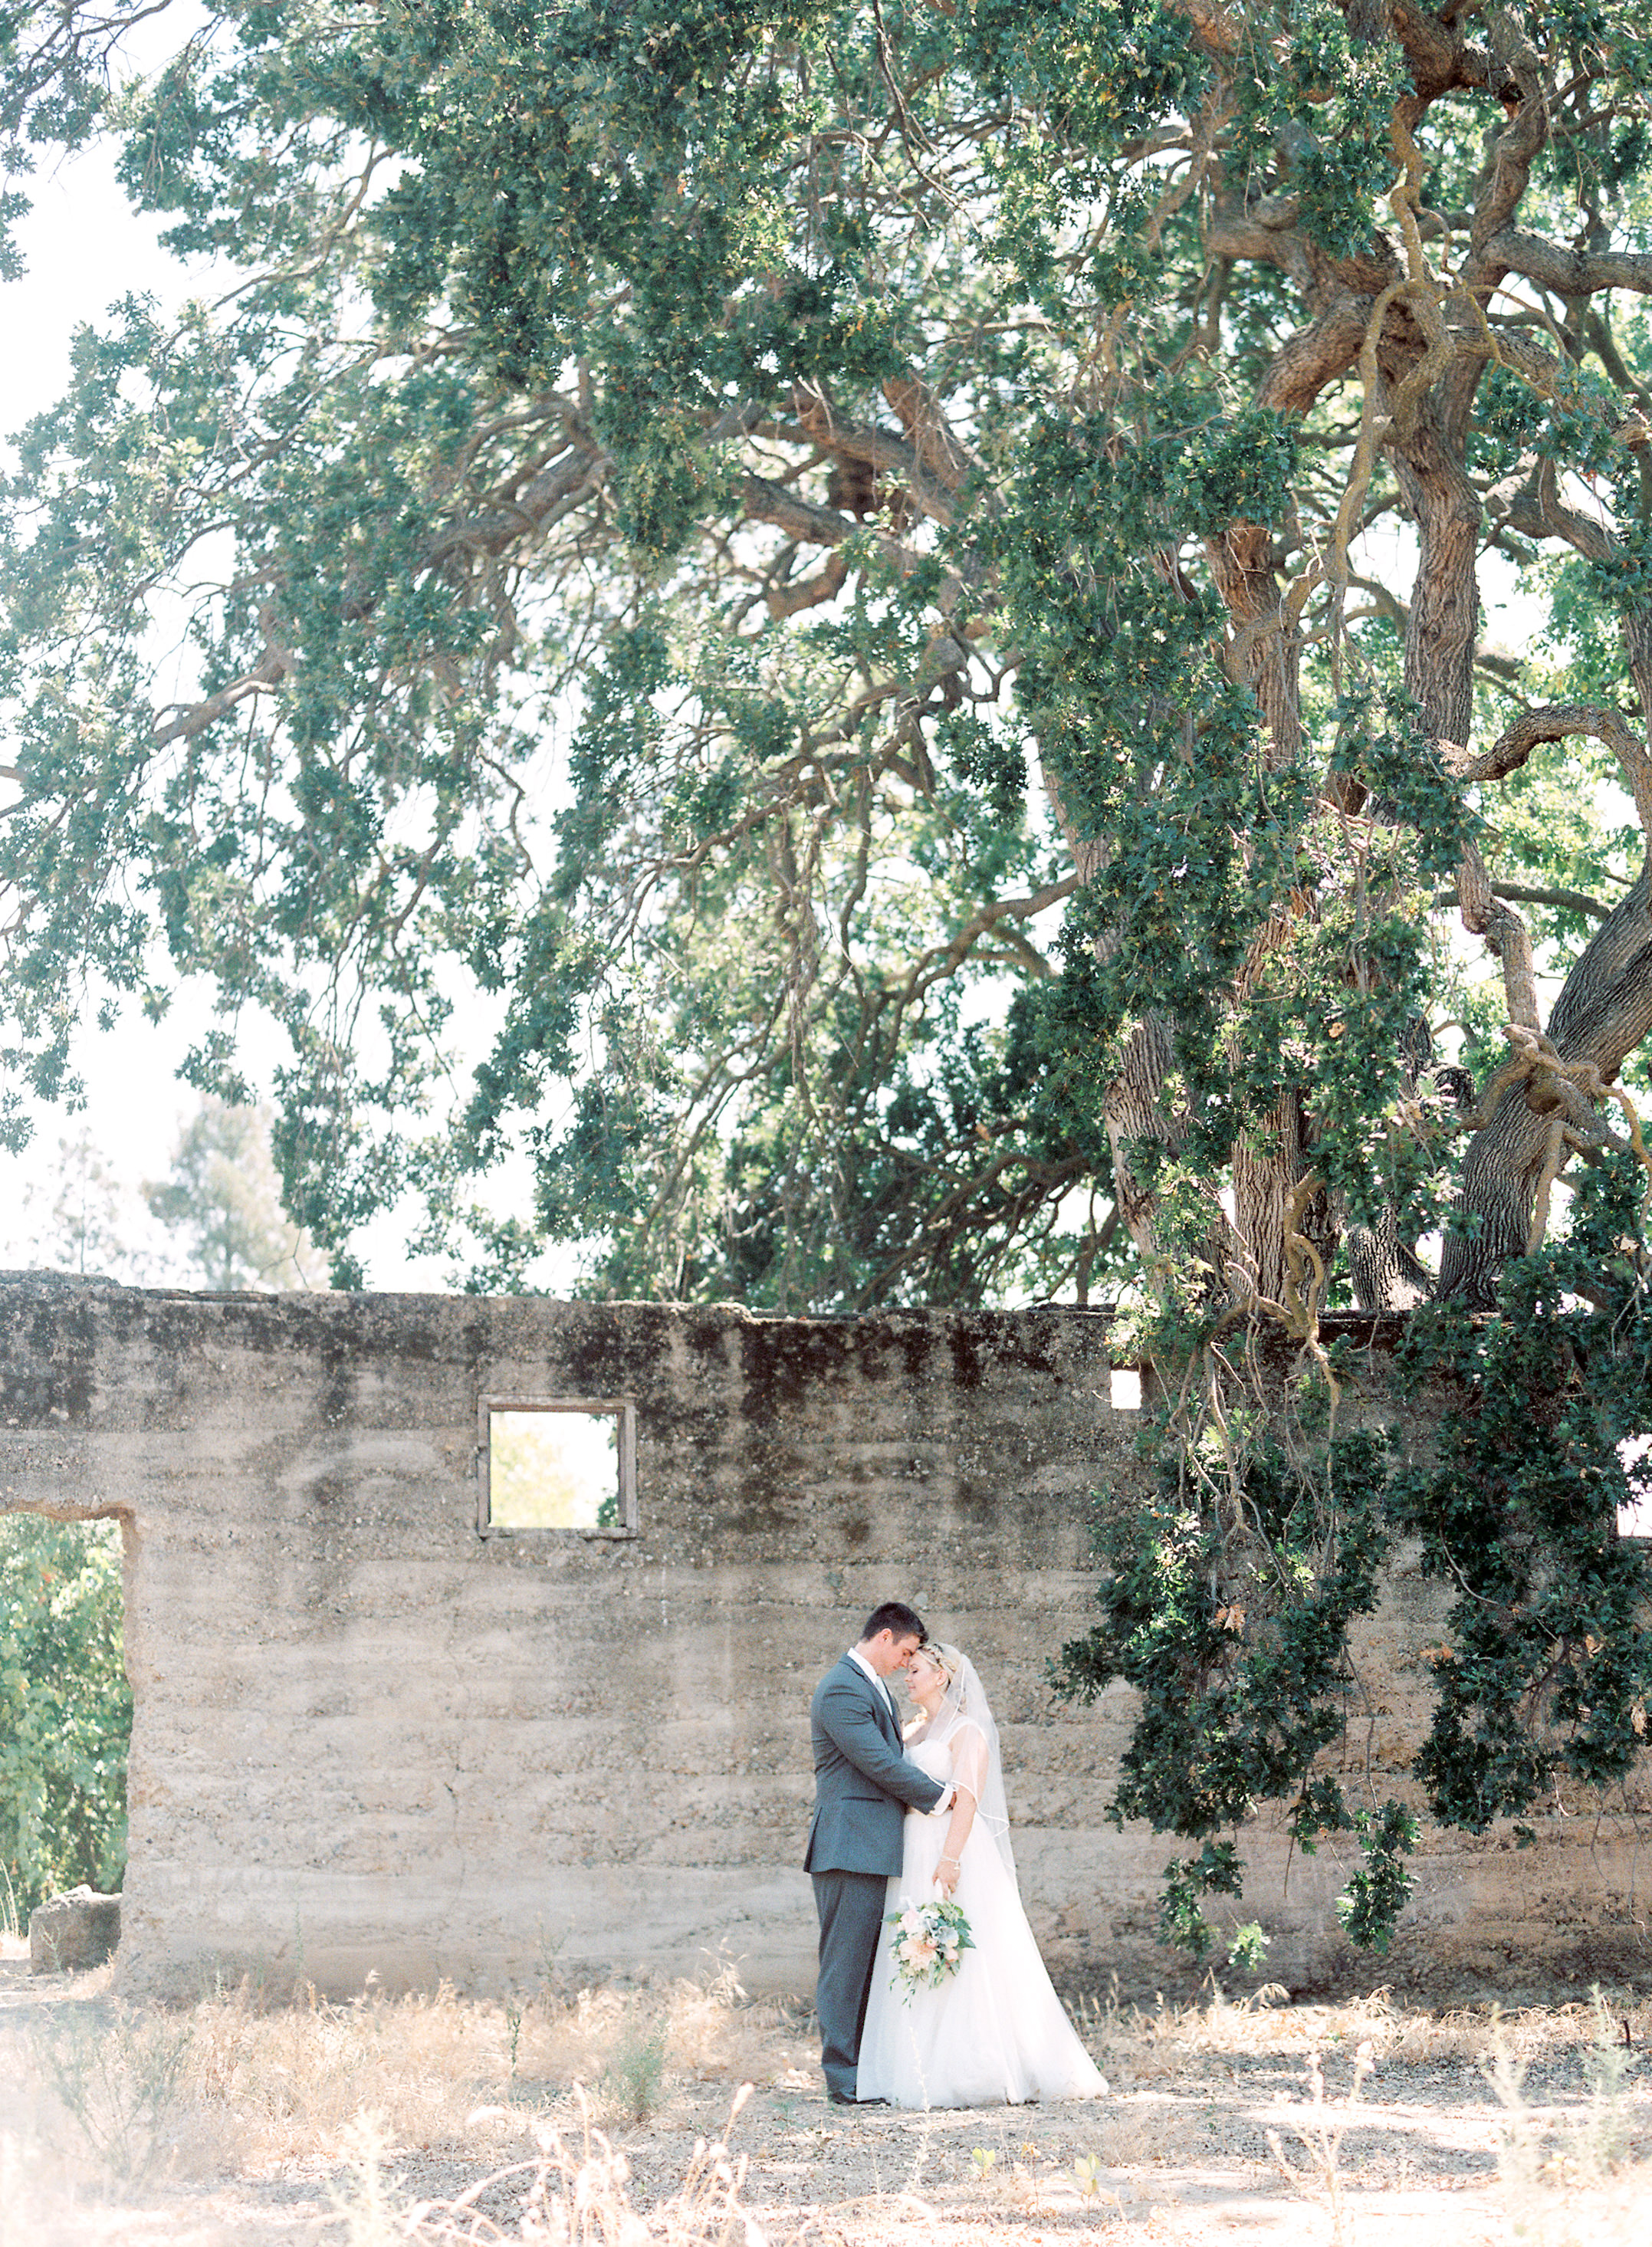 southern-inspired-wedding-at-ravenswood-historic-site-007-5.jpg